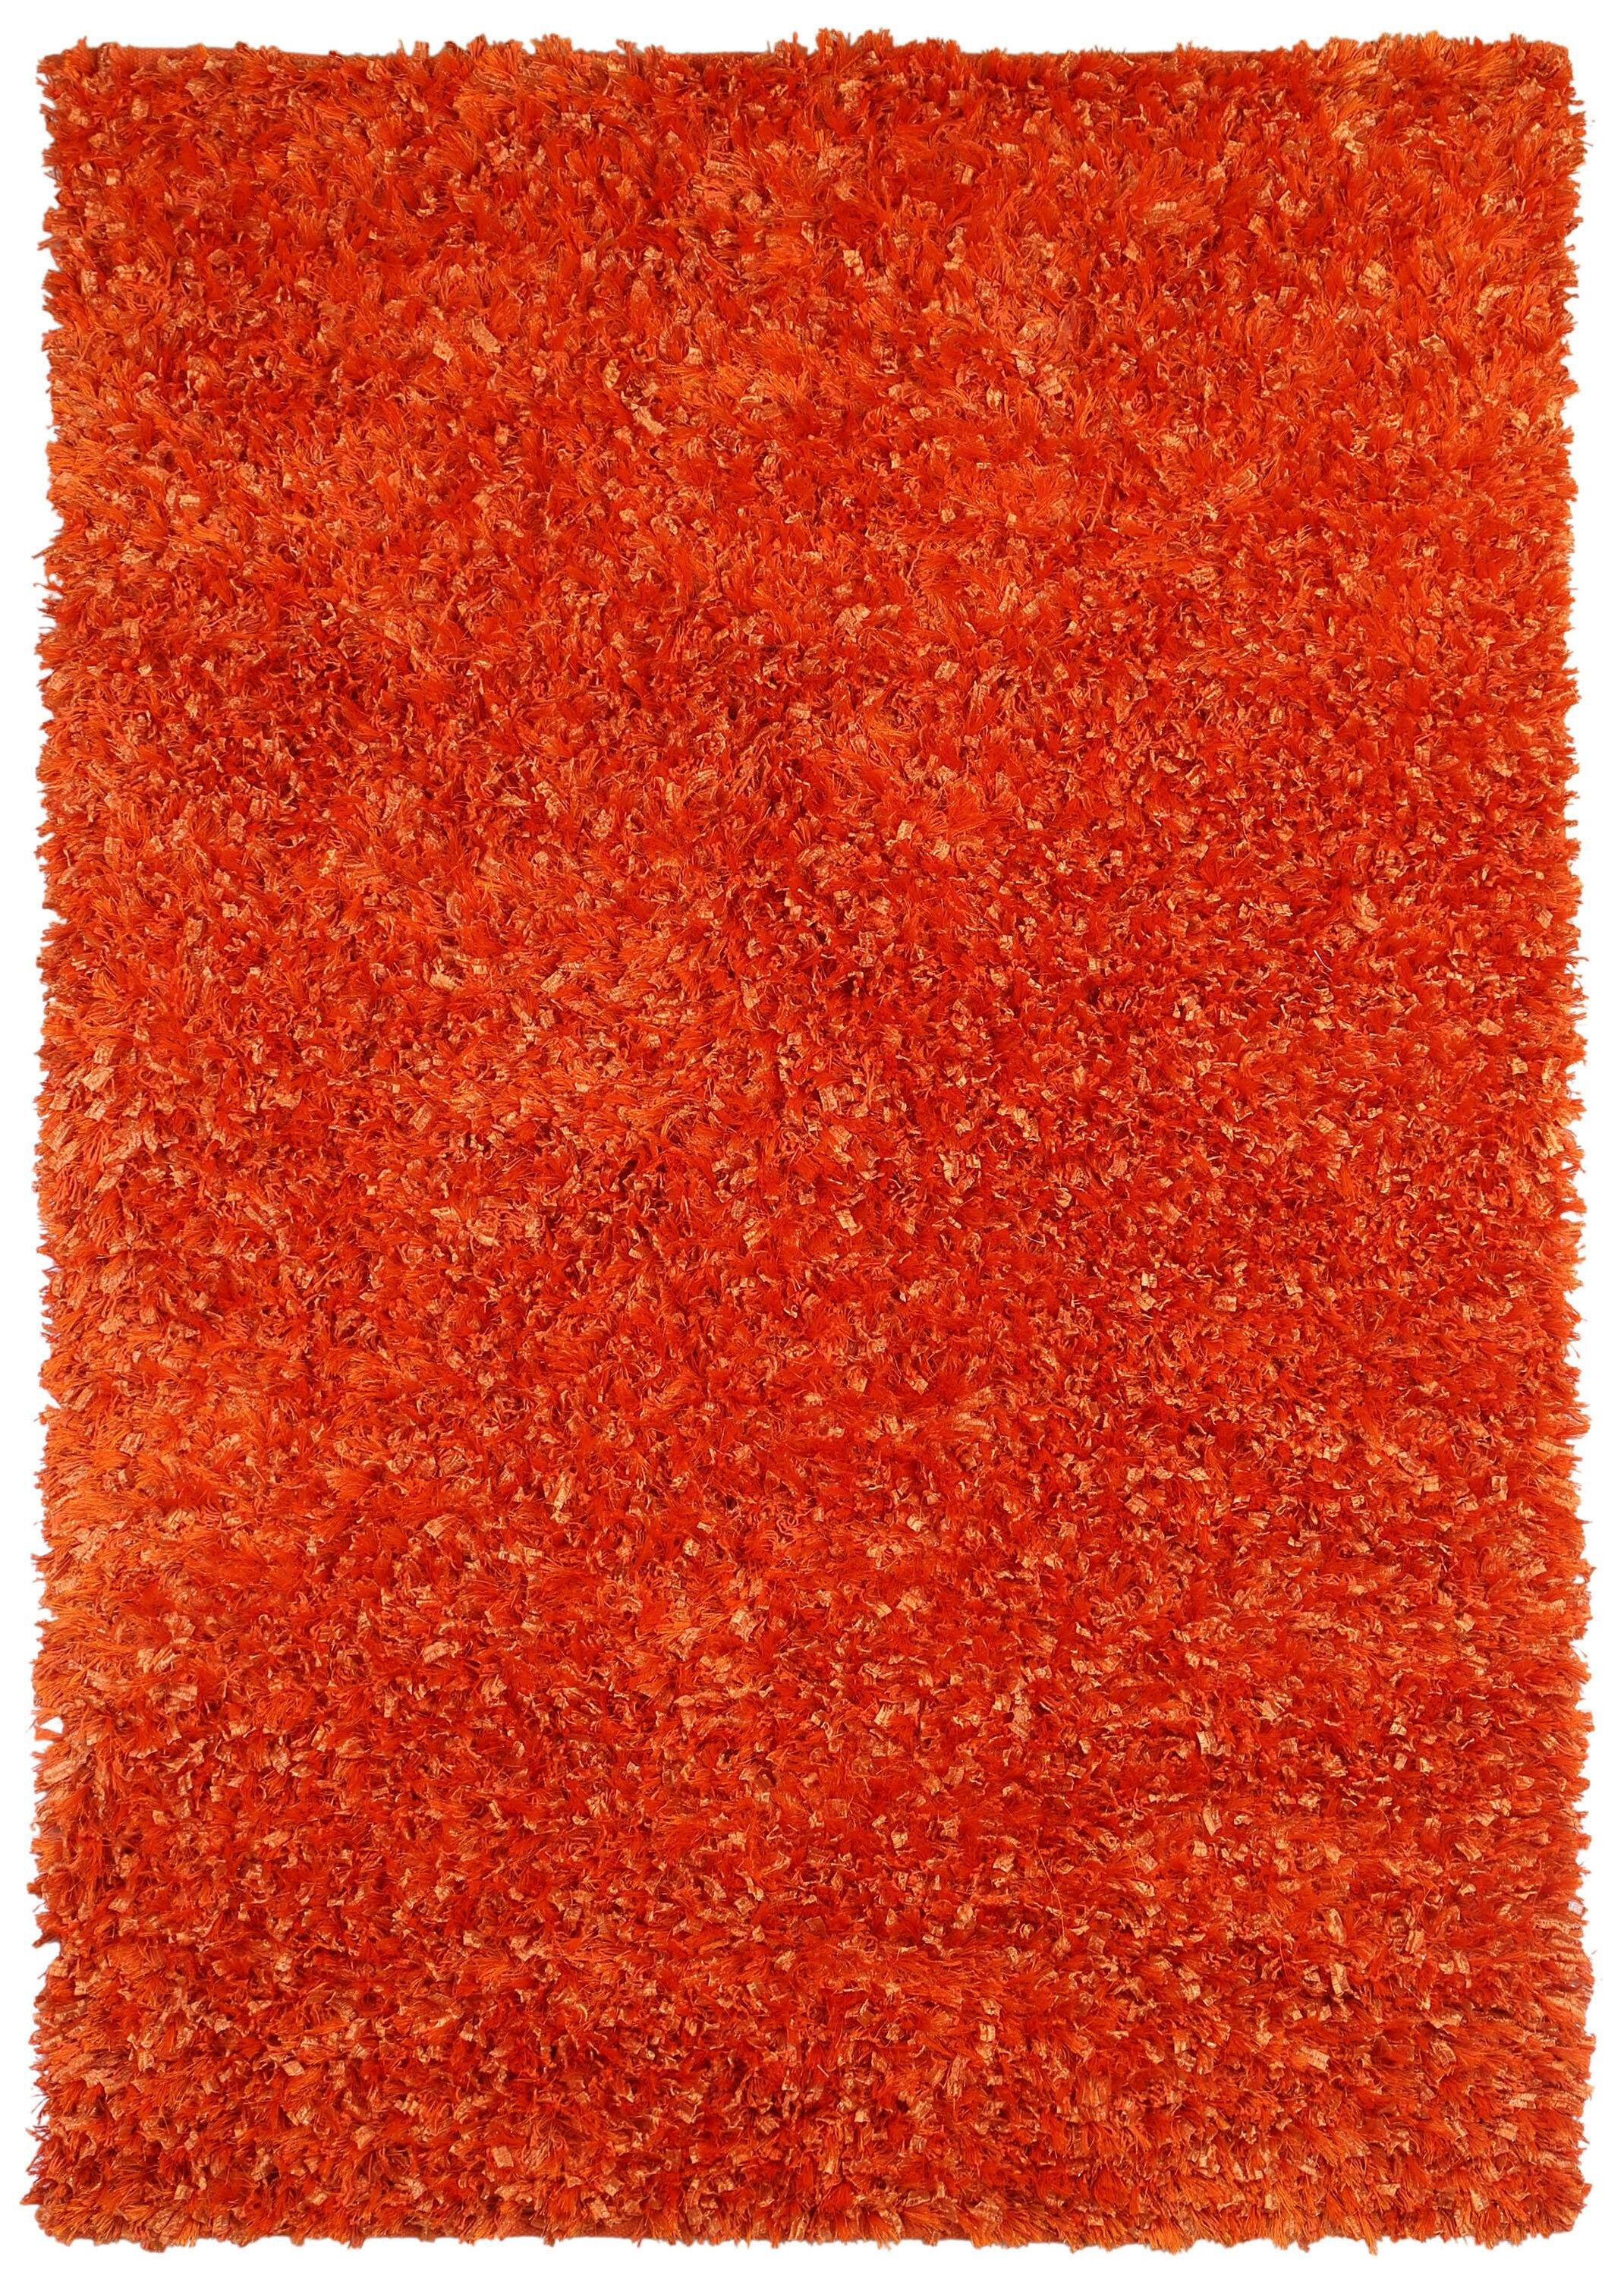 Baumann Hand-Loomed Orange Area Rug Rug Size: Rectangle 4' x 6'